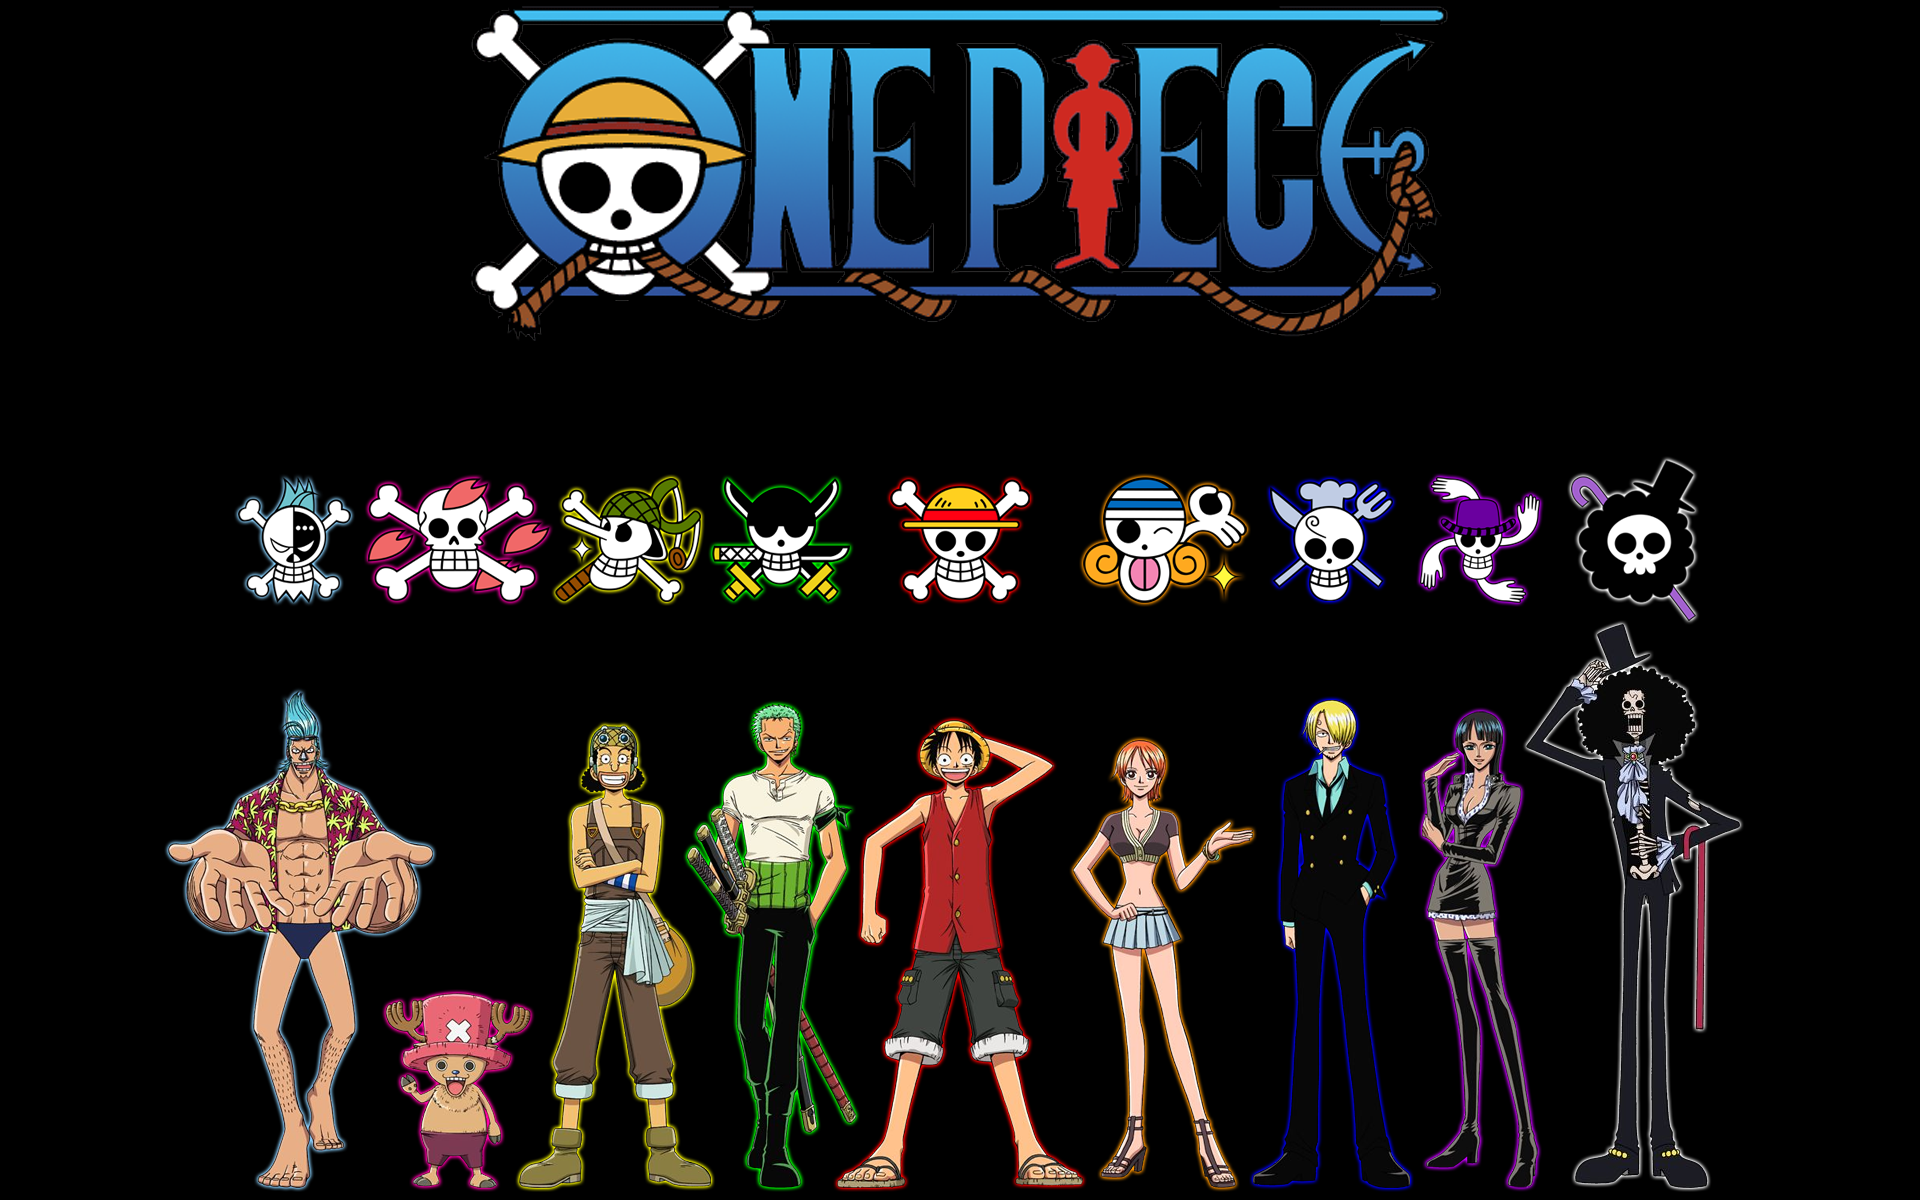 One Piece Wallpaper All Straw Hat Pirates Characters In Black Background 47 Pics Hd Wallpapers Wallpapers Download High Resolution Wallpapers In 2020 One Piece Wallpaper Iphone One Piece Luffy Anime Wallpaper